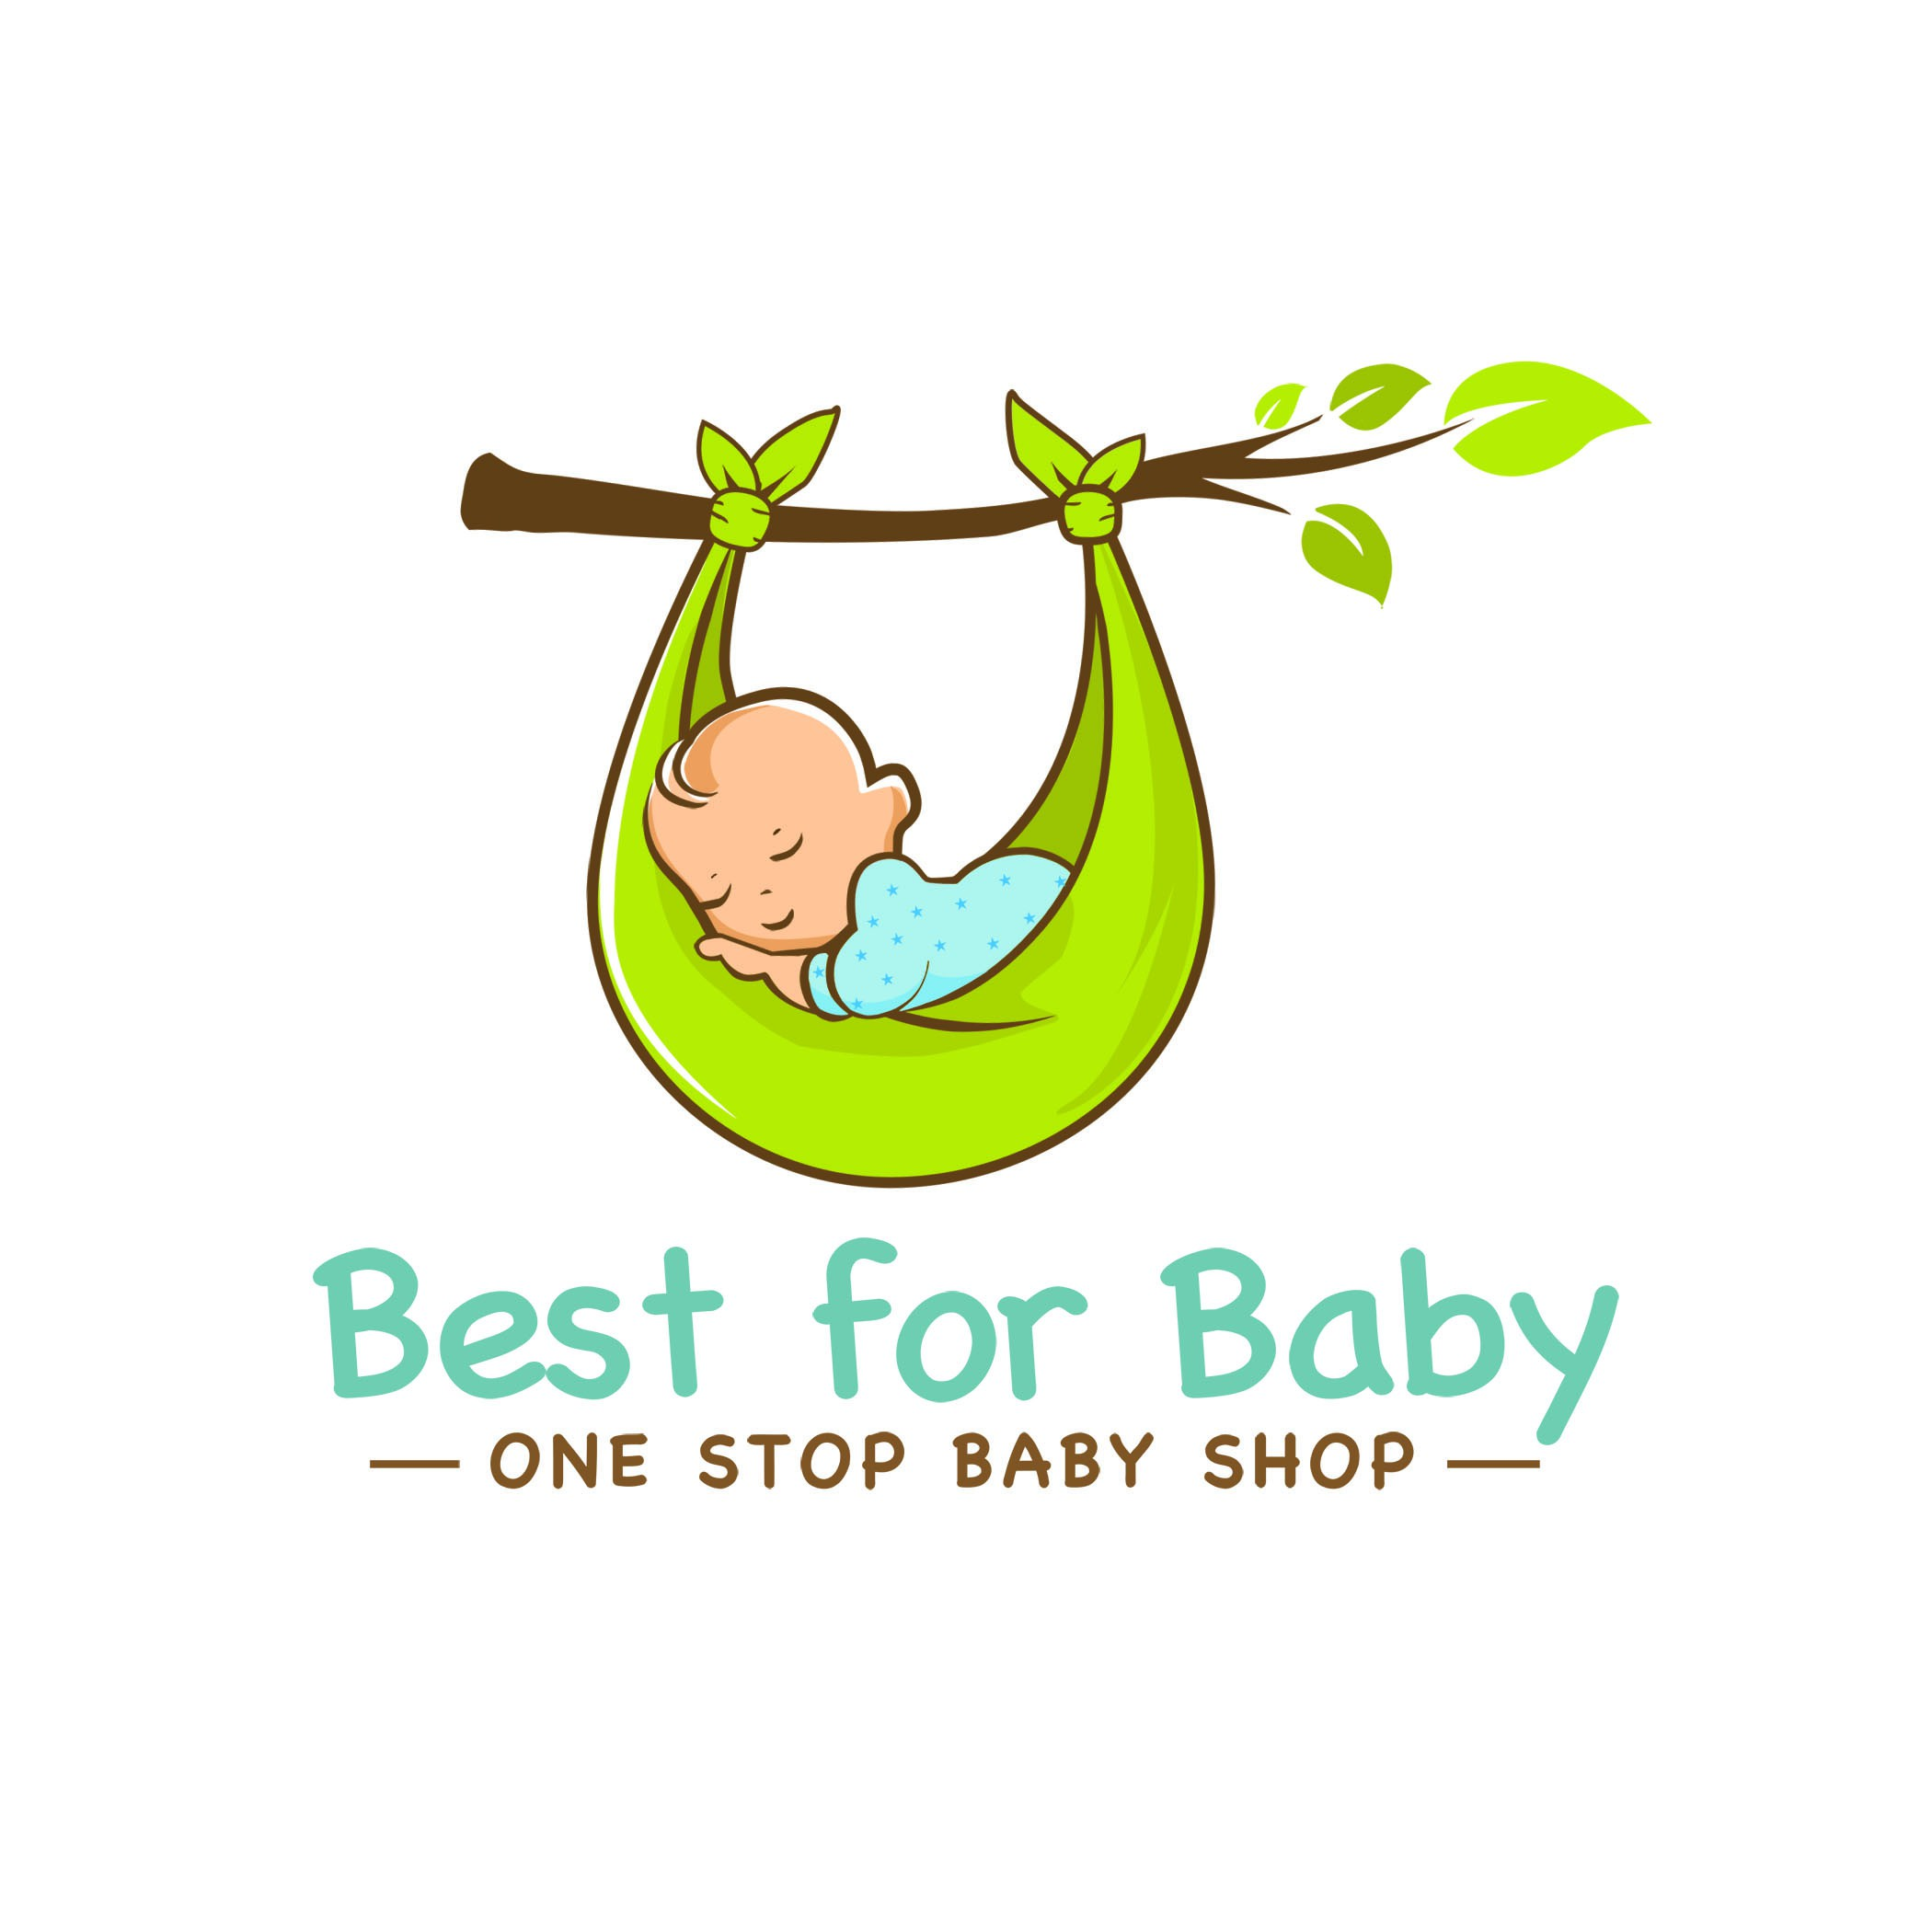 Best for Baby needs a super sweet logo